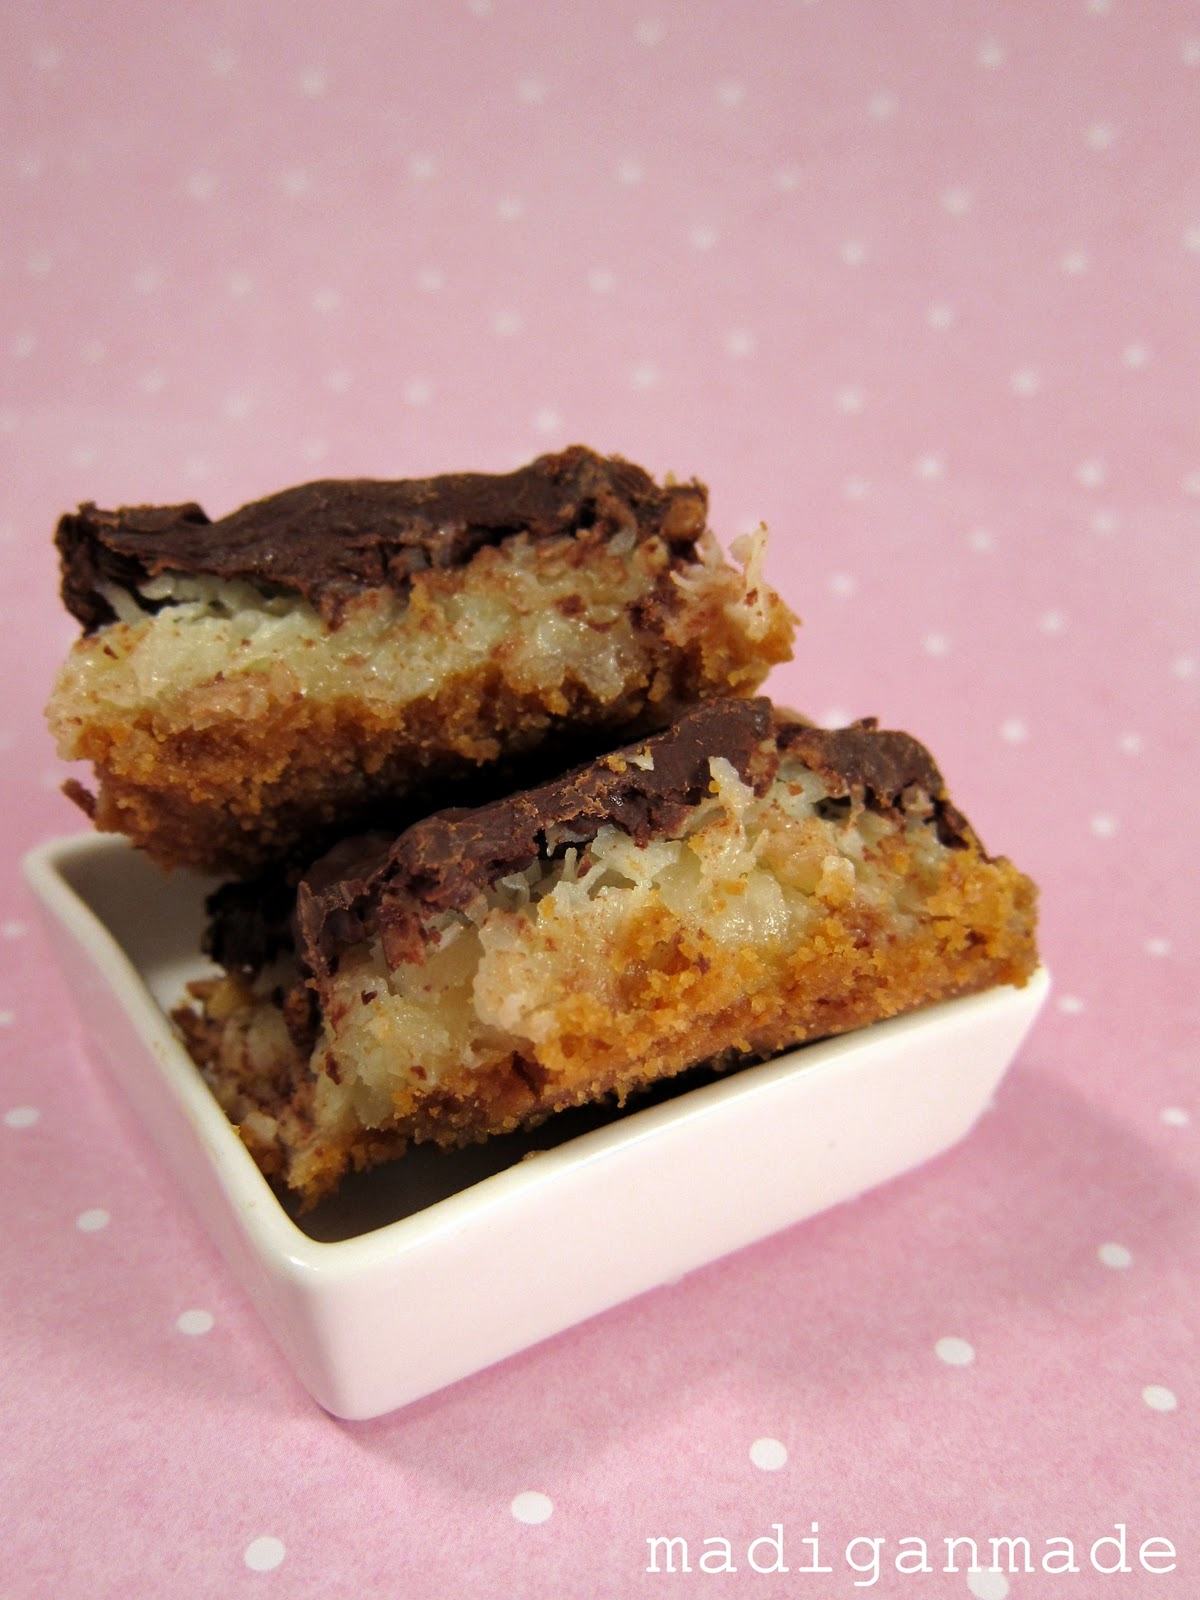 madigan made mounds inspired chocolate coconut bars